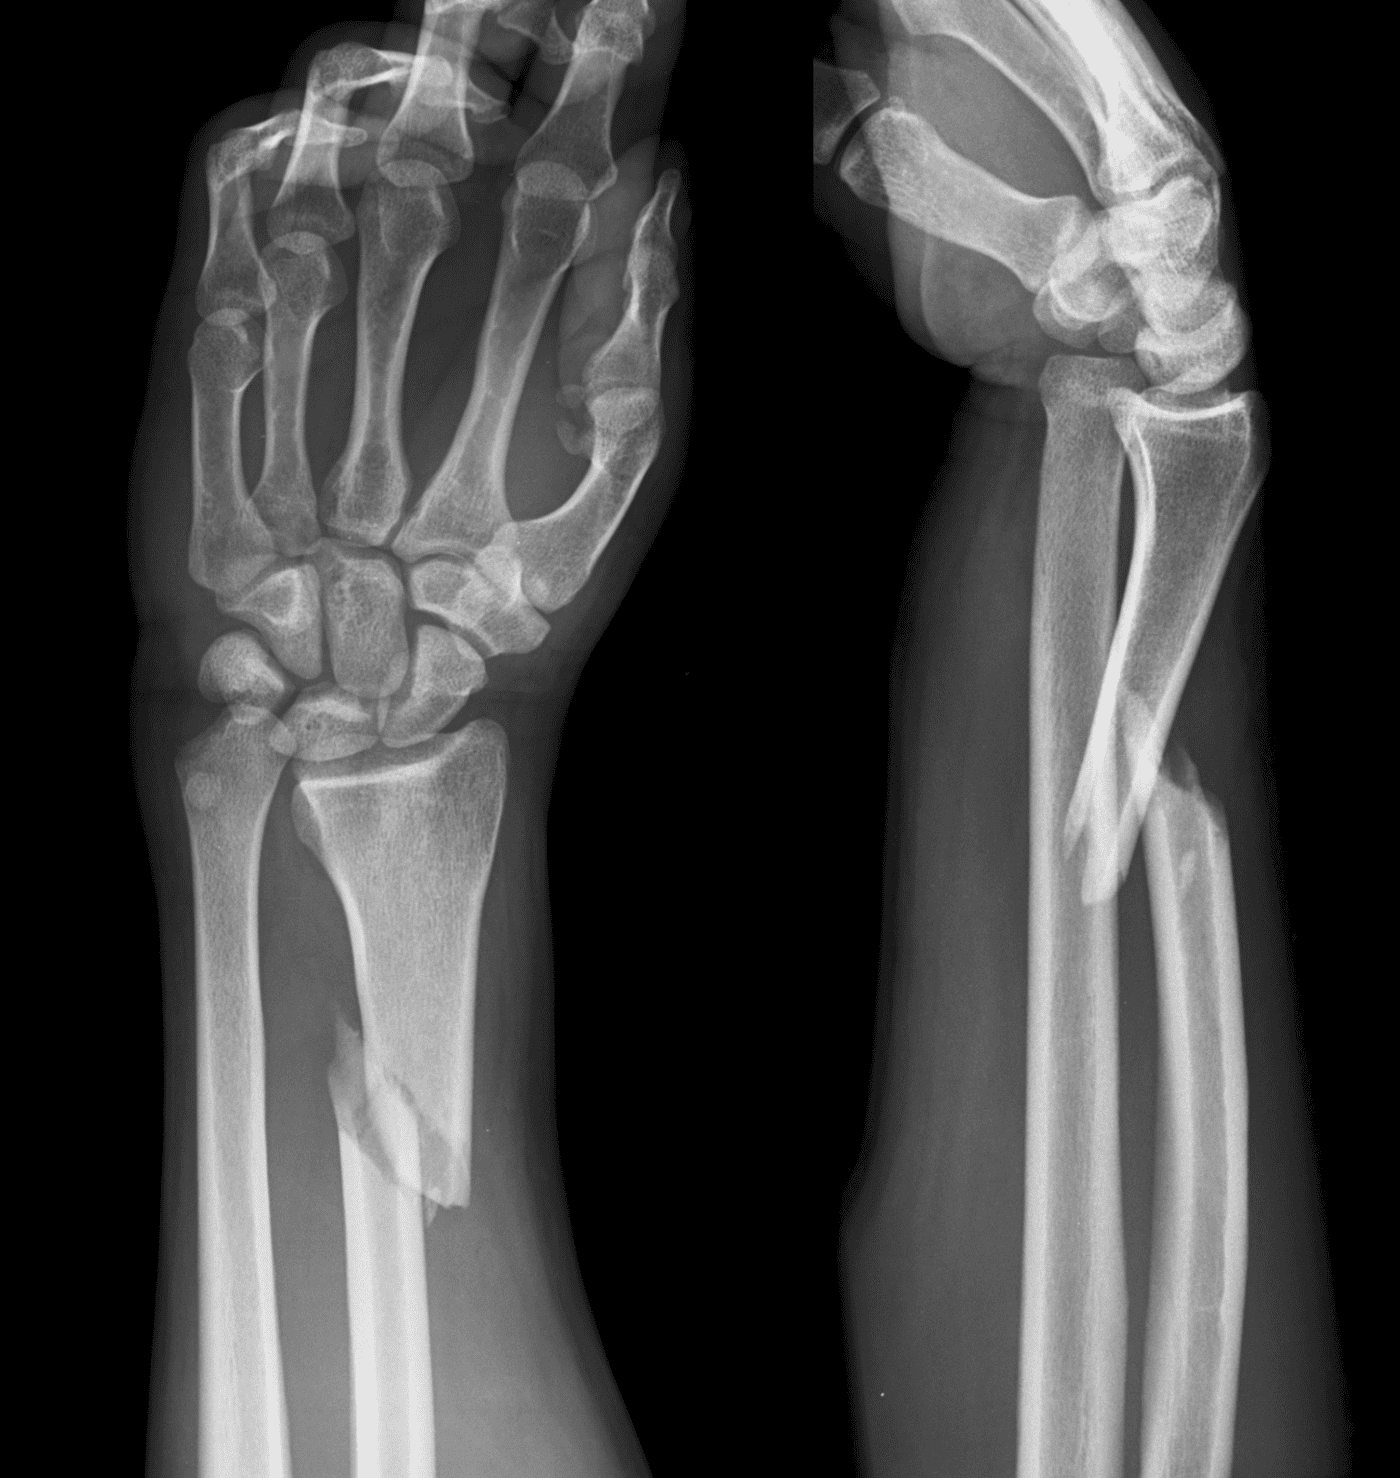 ICE 001 Galeazzi forearm fracture dislocation